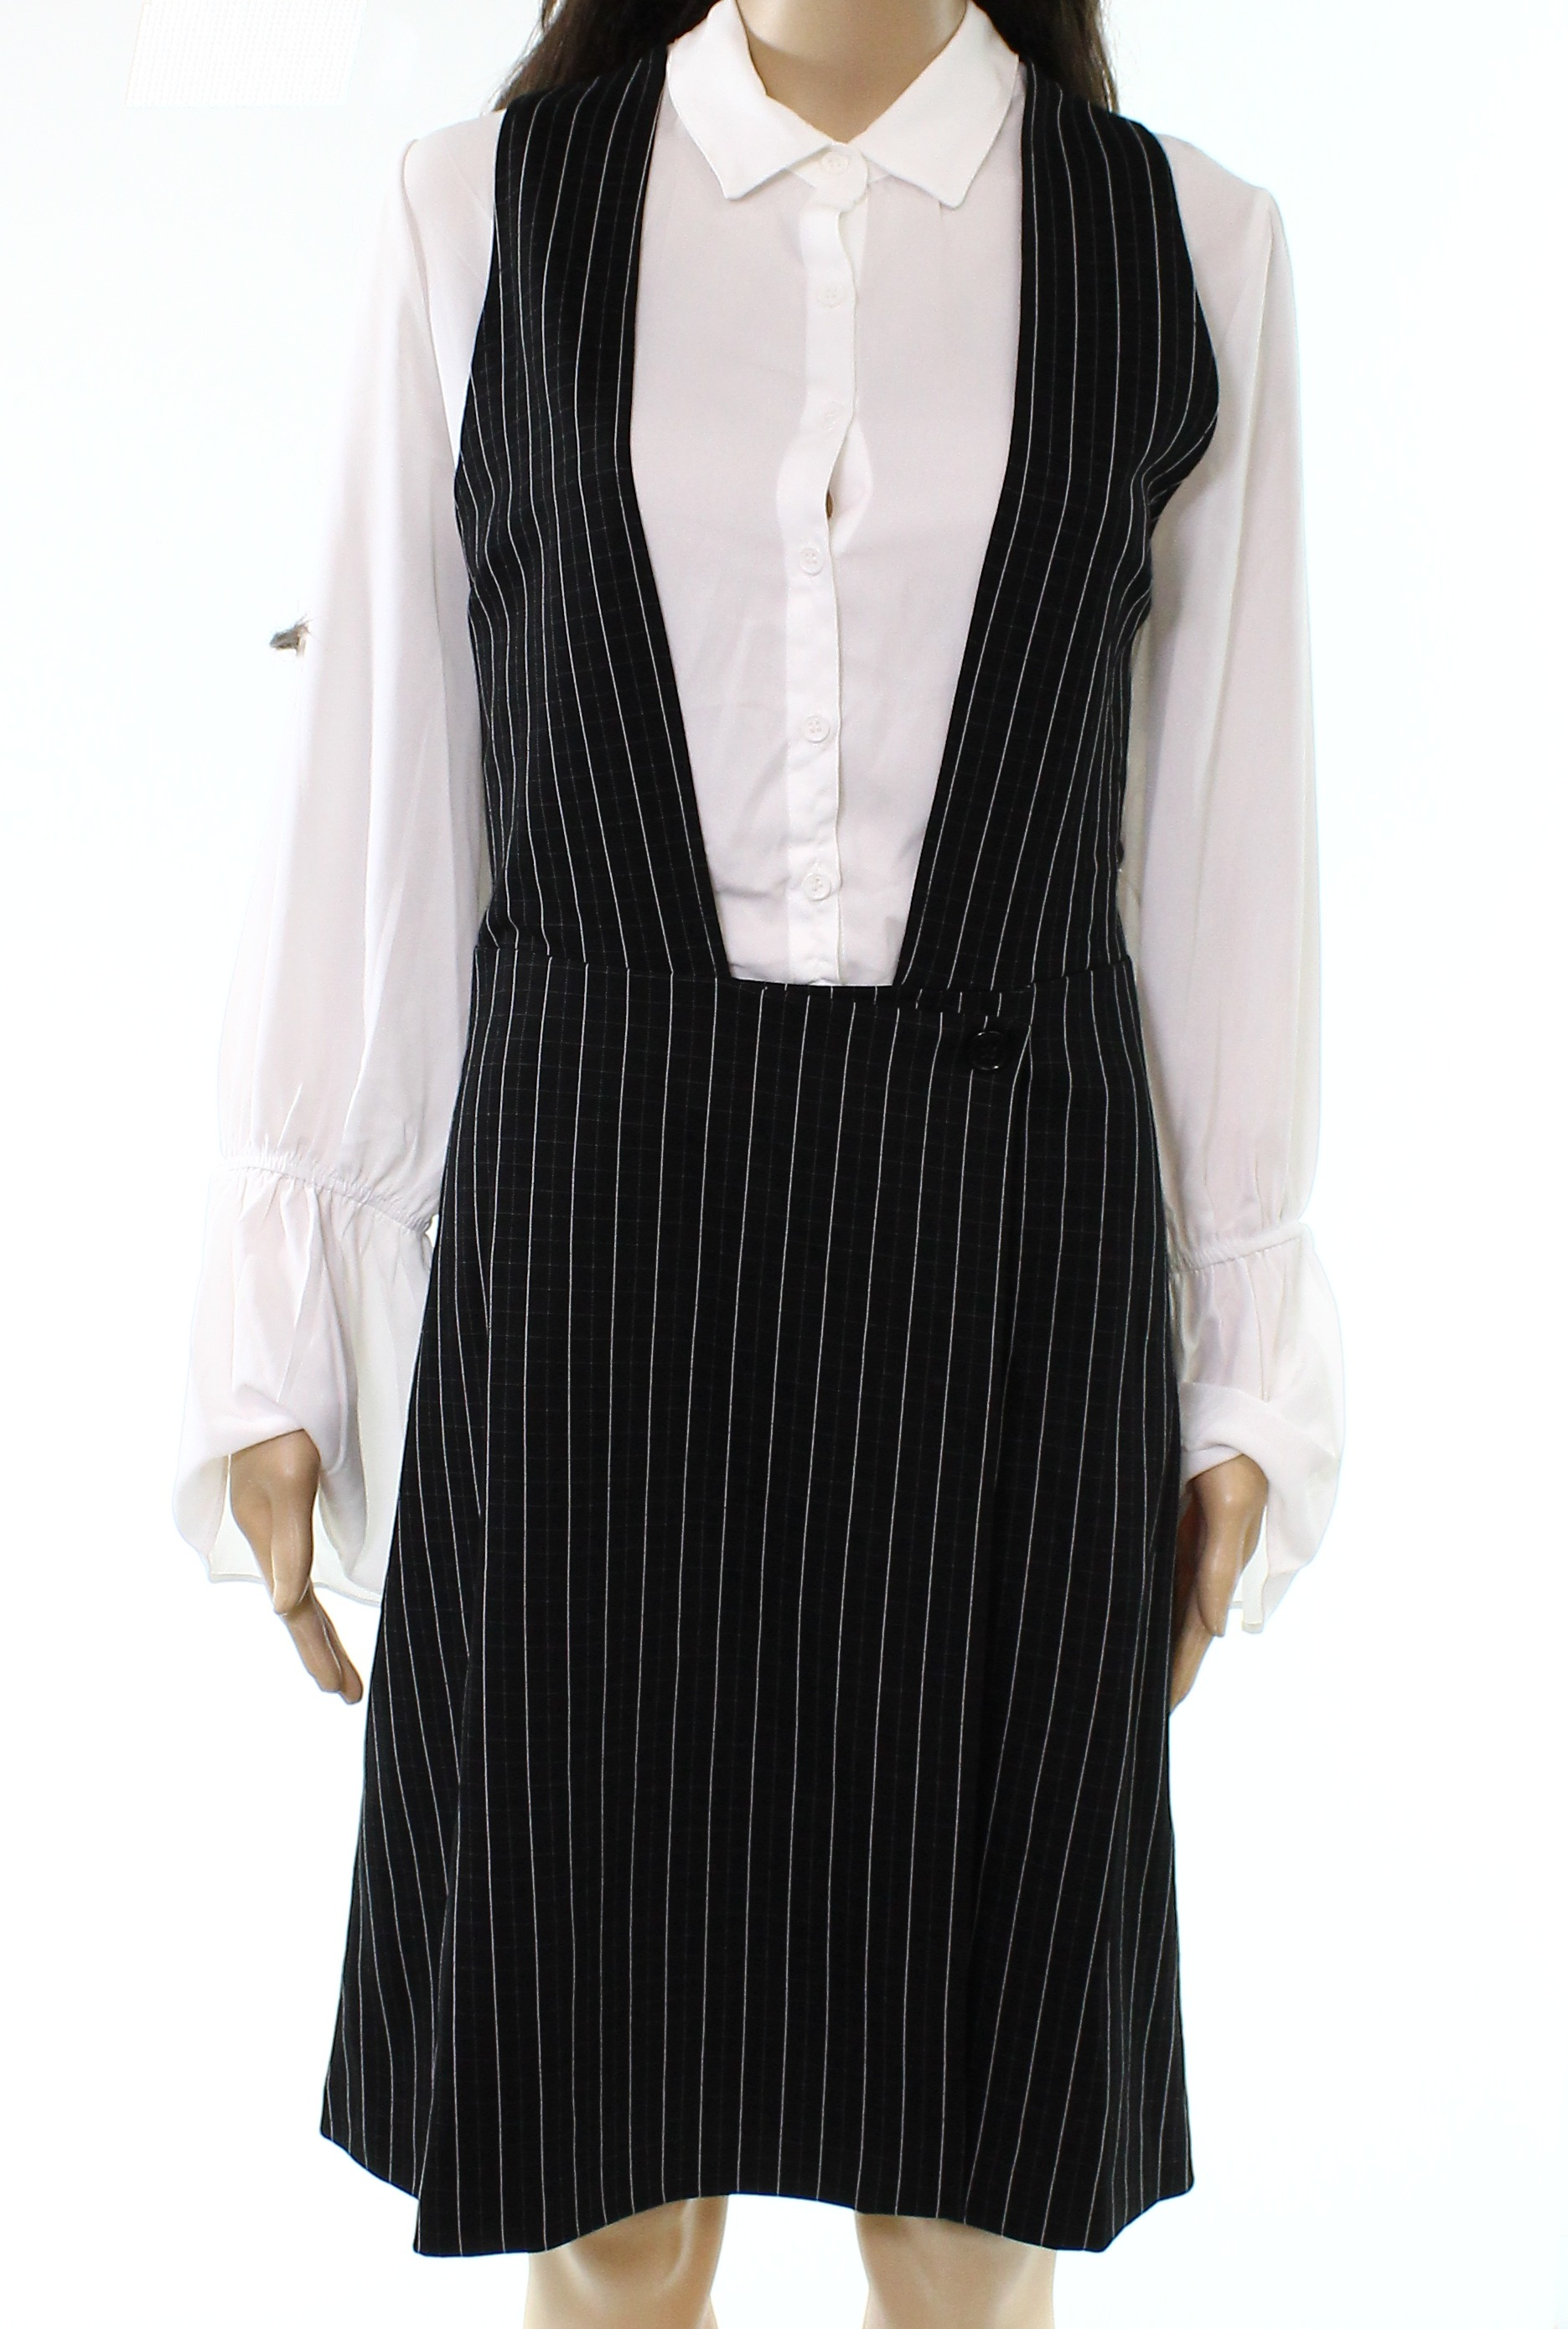 f02c36ccf51 Details about ECI NEW Black White Womens Size 12 Contrast Button Down Shirt  Dress  138 486